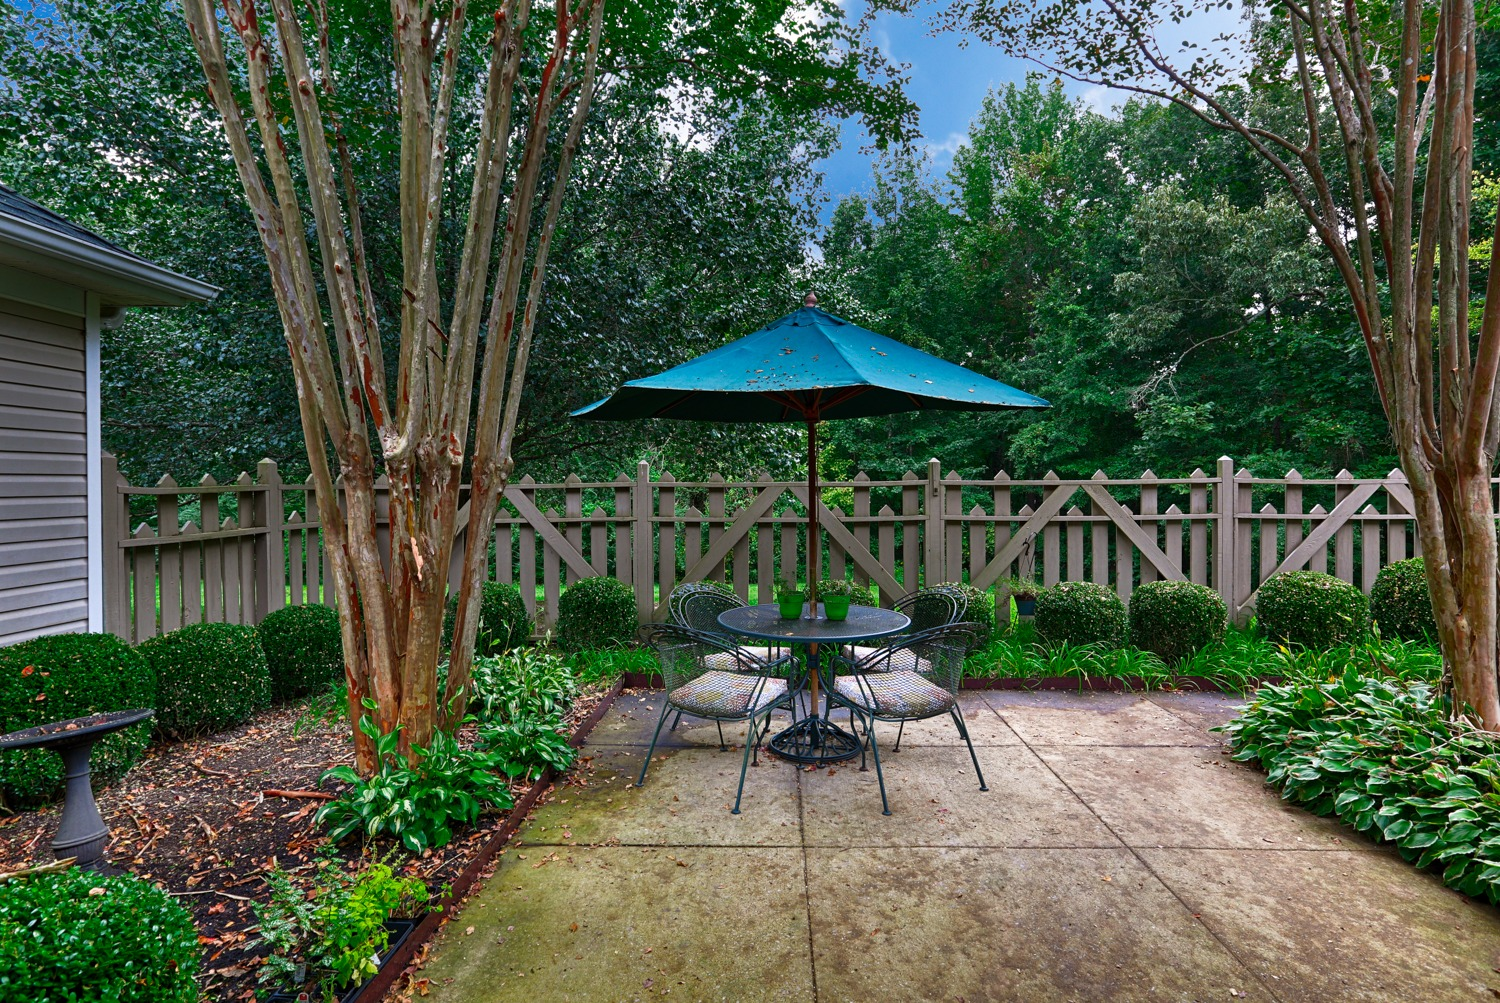 The Cottages Corinth, MS location outdoor space